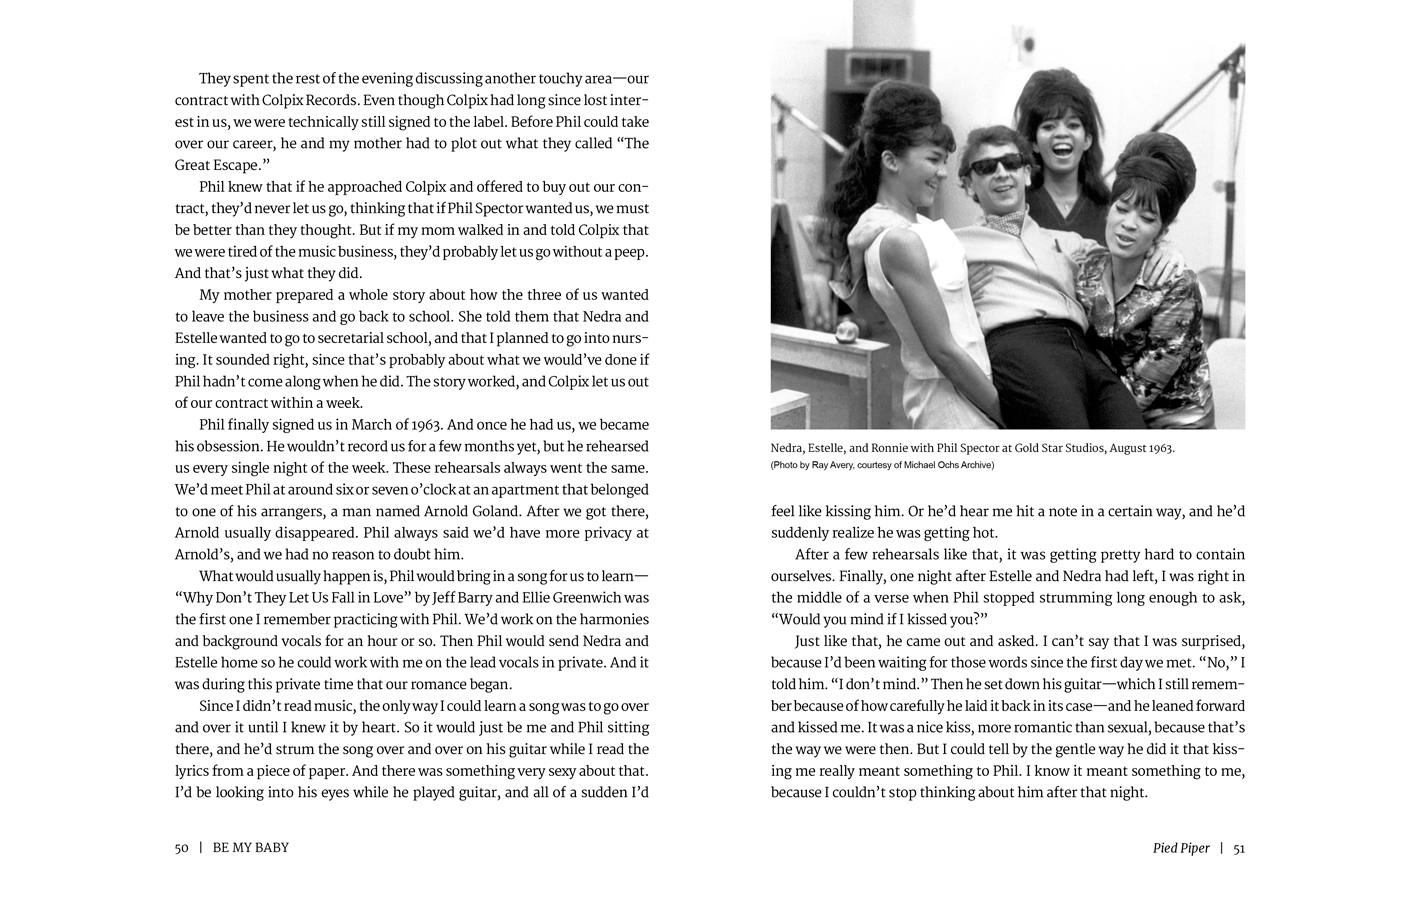 Pages 50-51 for Be My Baby, a memoir by Ronnie Spector